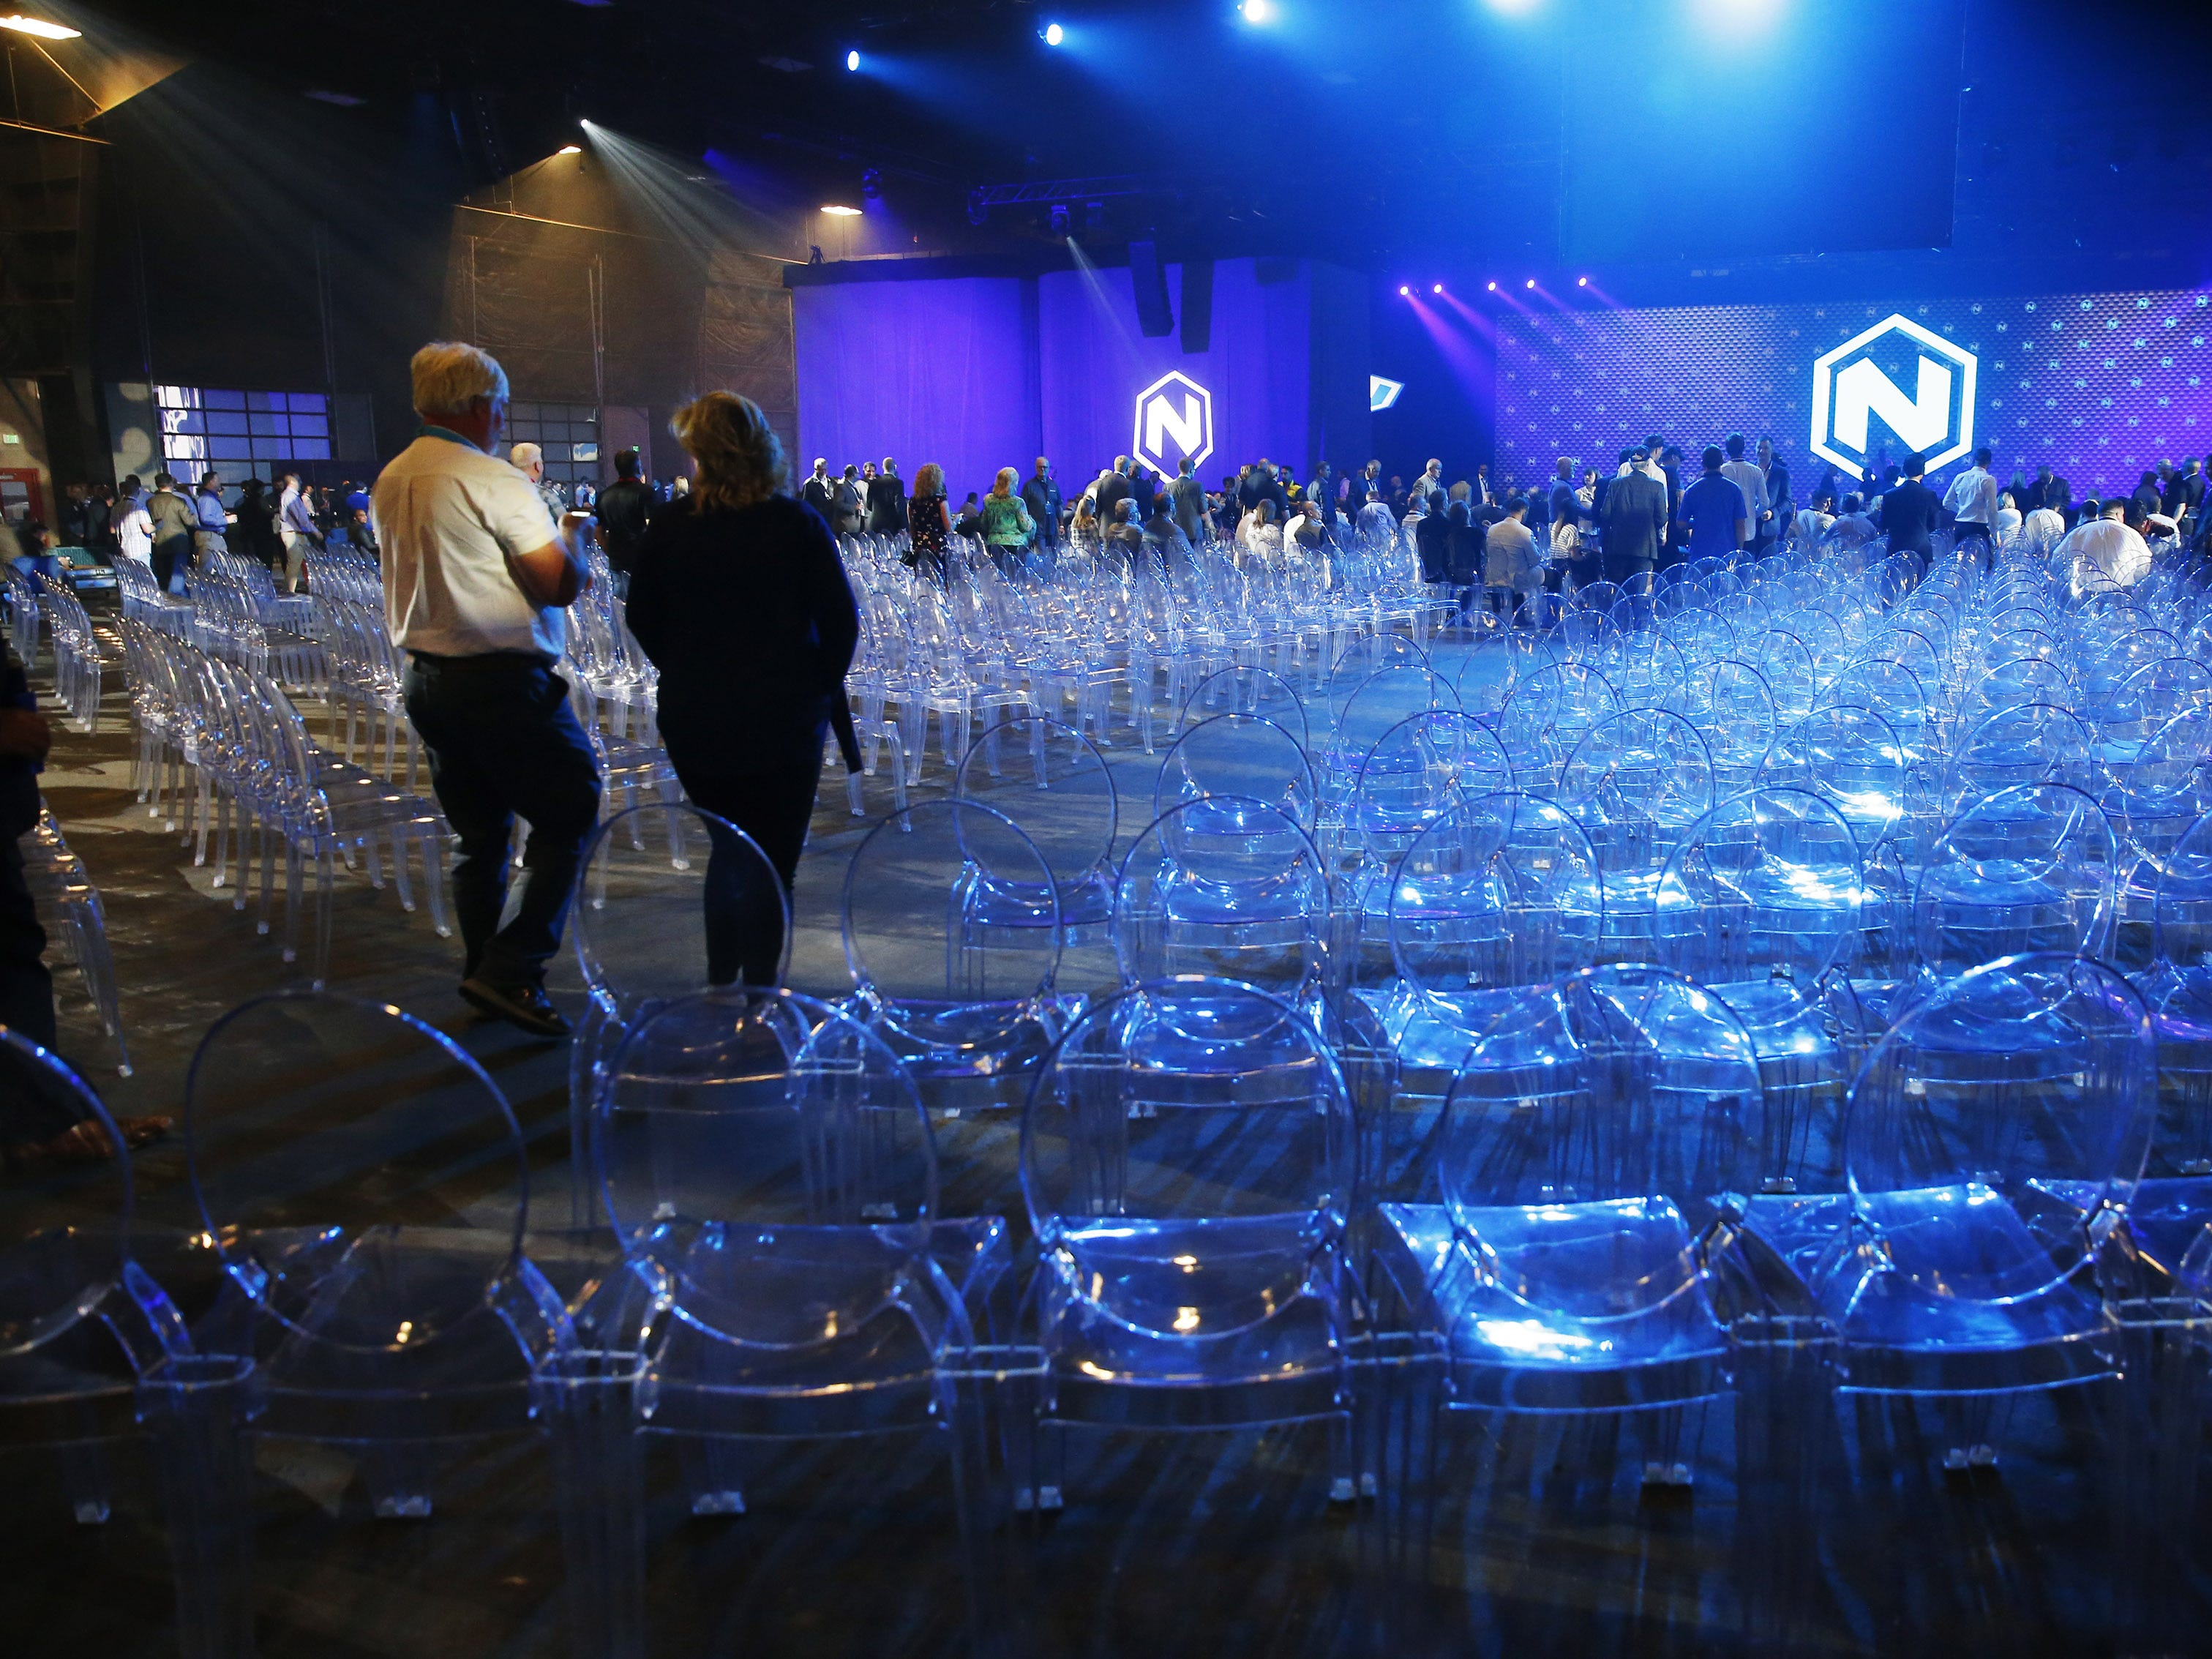 Guests take their seats at Nikola World 2019 at Westworld in Scottsdale, Ariz. April 16, 2019.